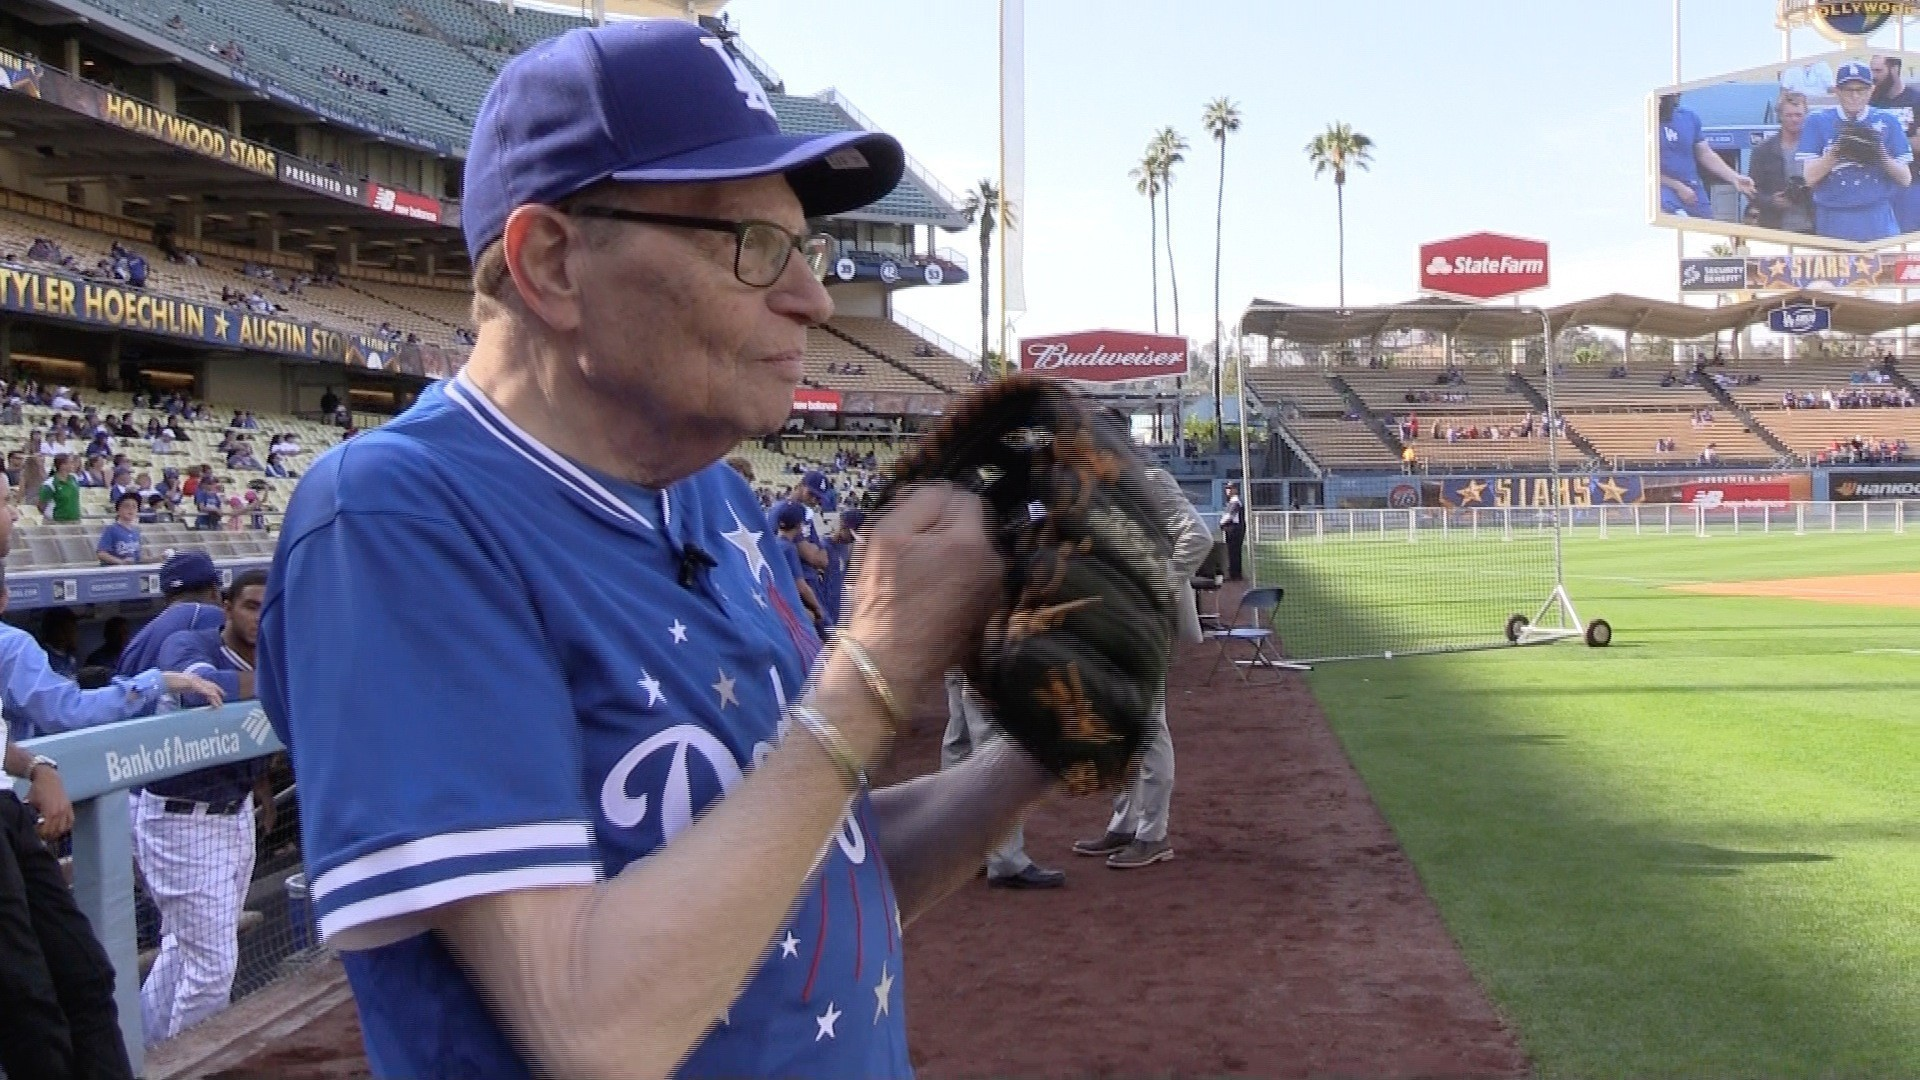 Dodgers host Hollywood Stars celebrity softball game - Los ...